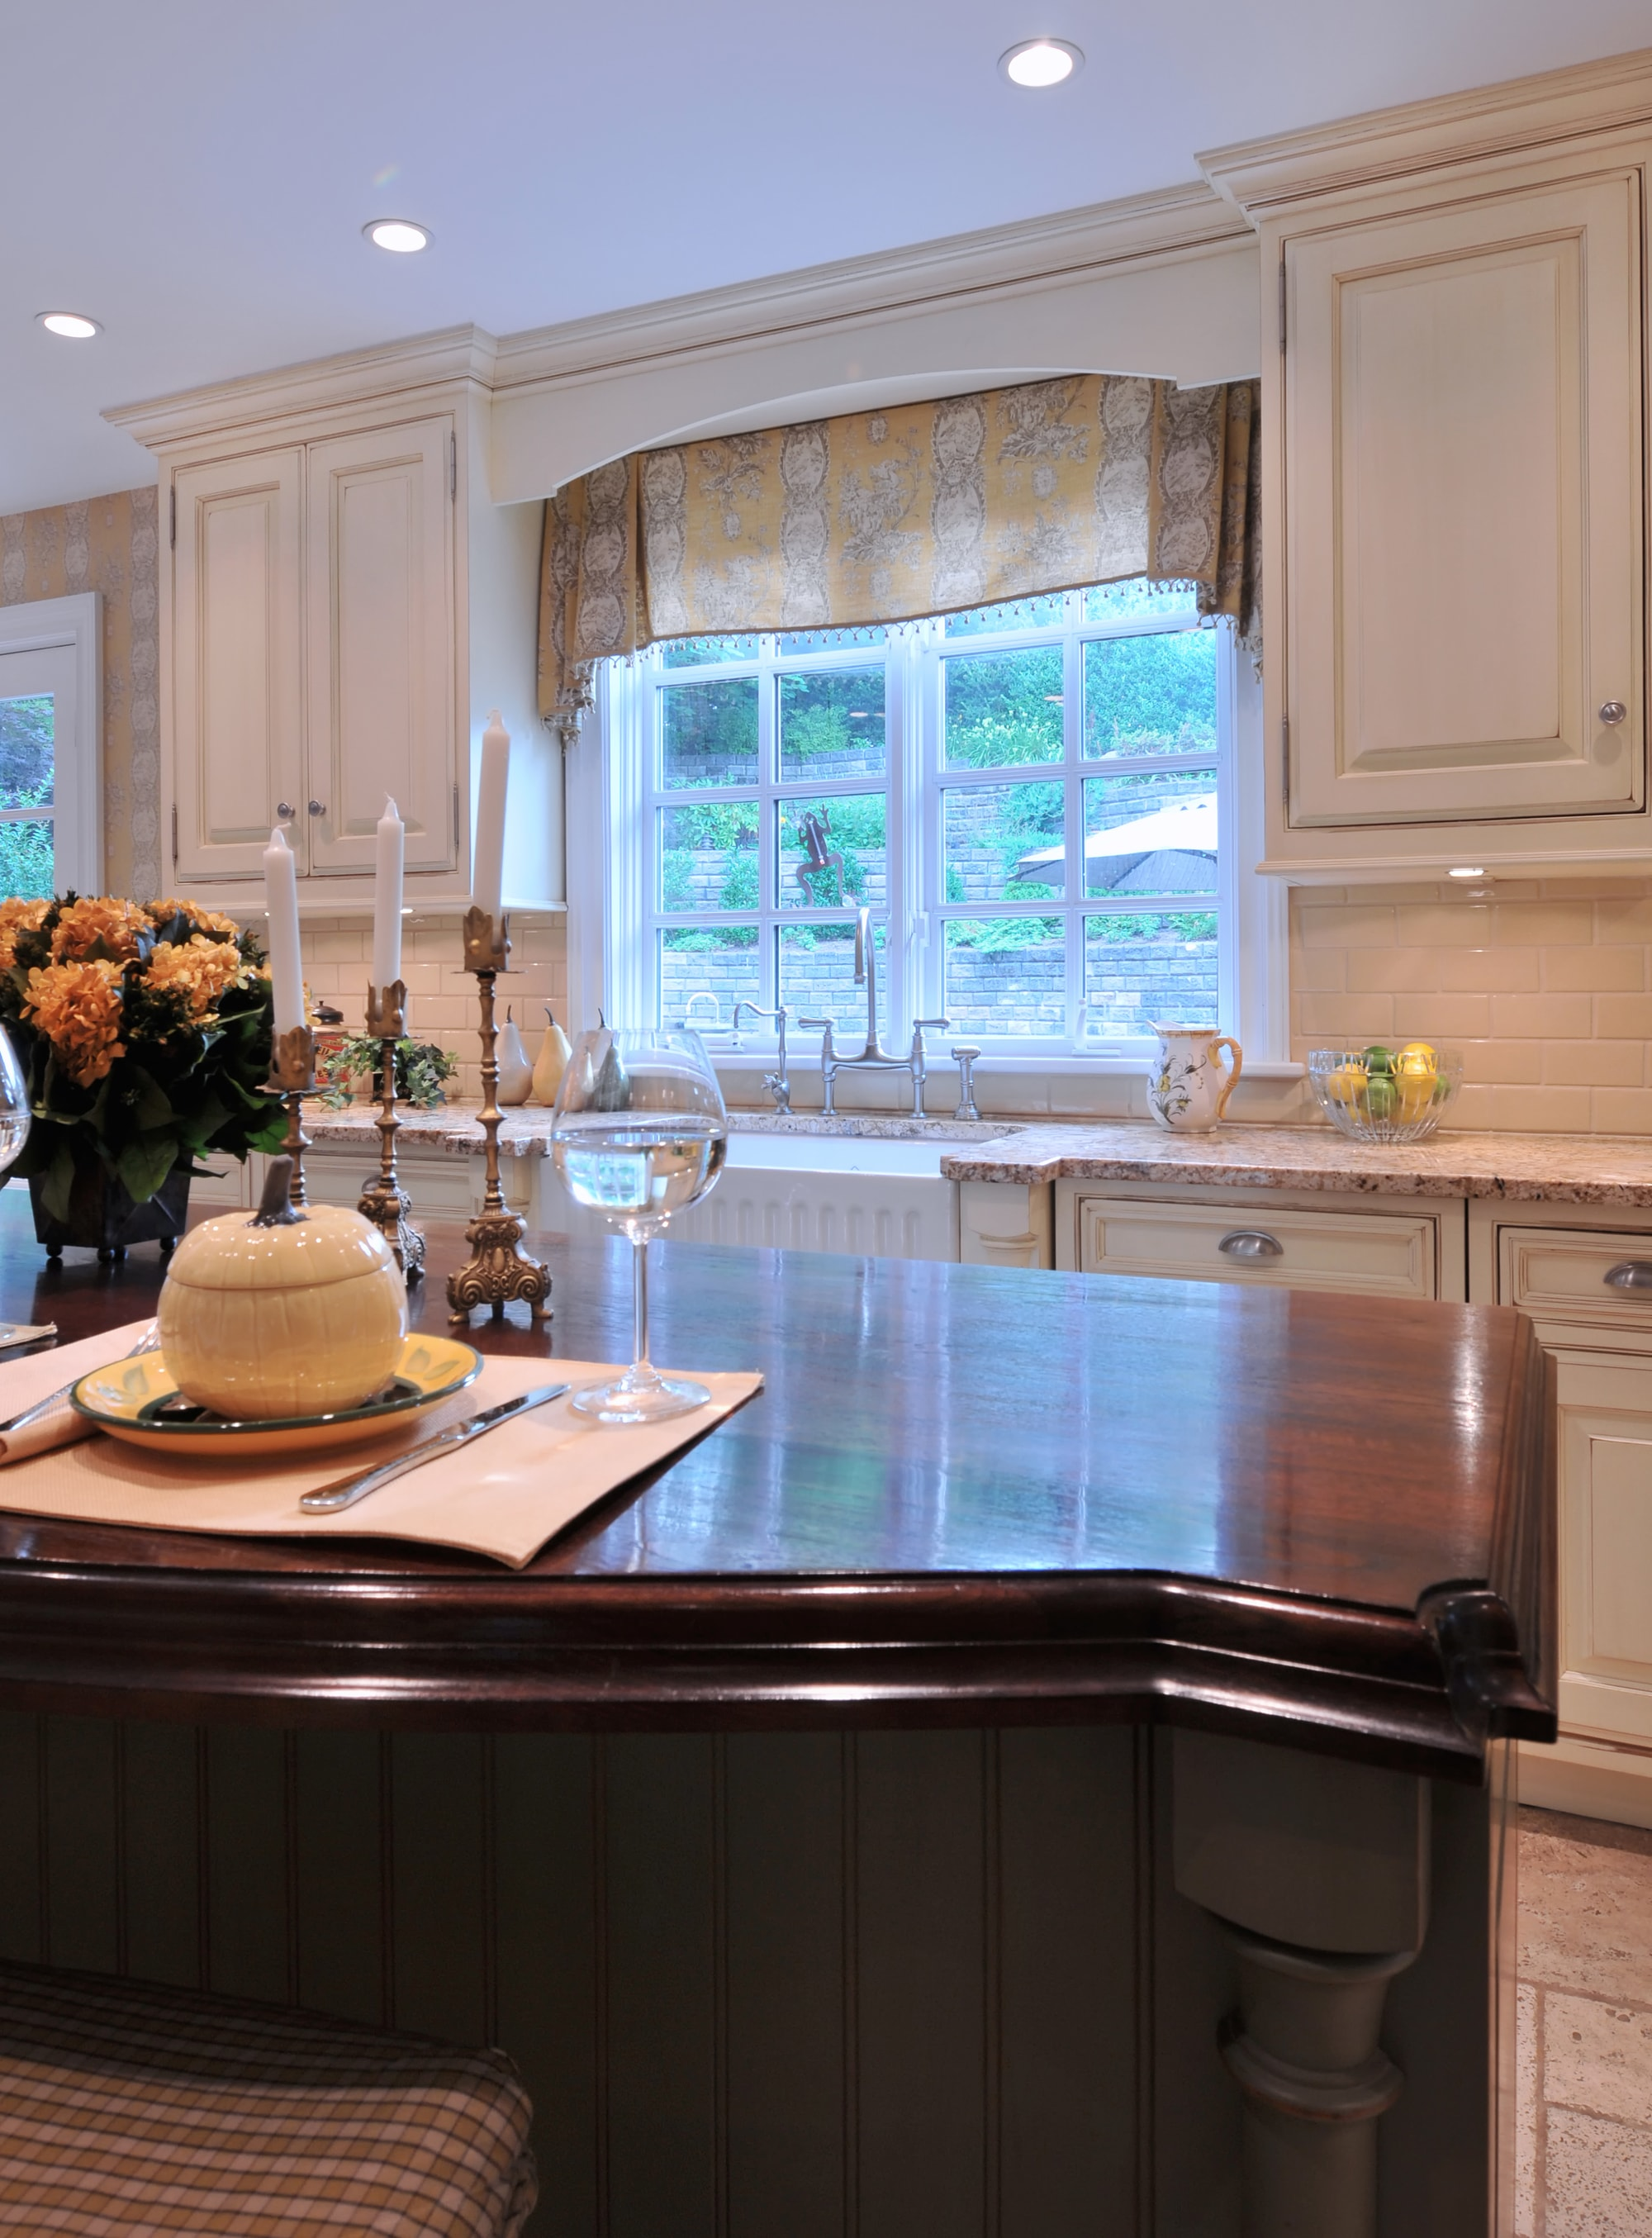 Traditional style kitchen with a classic french window and upper cabinets